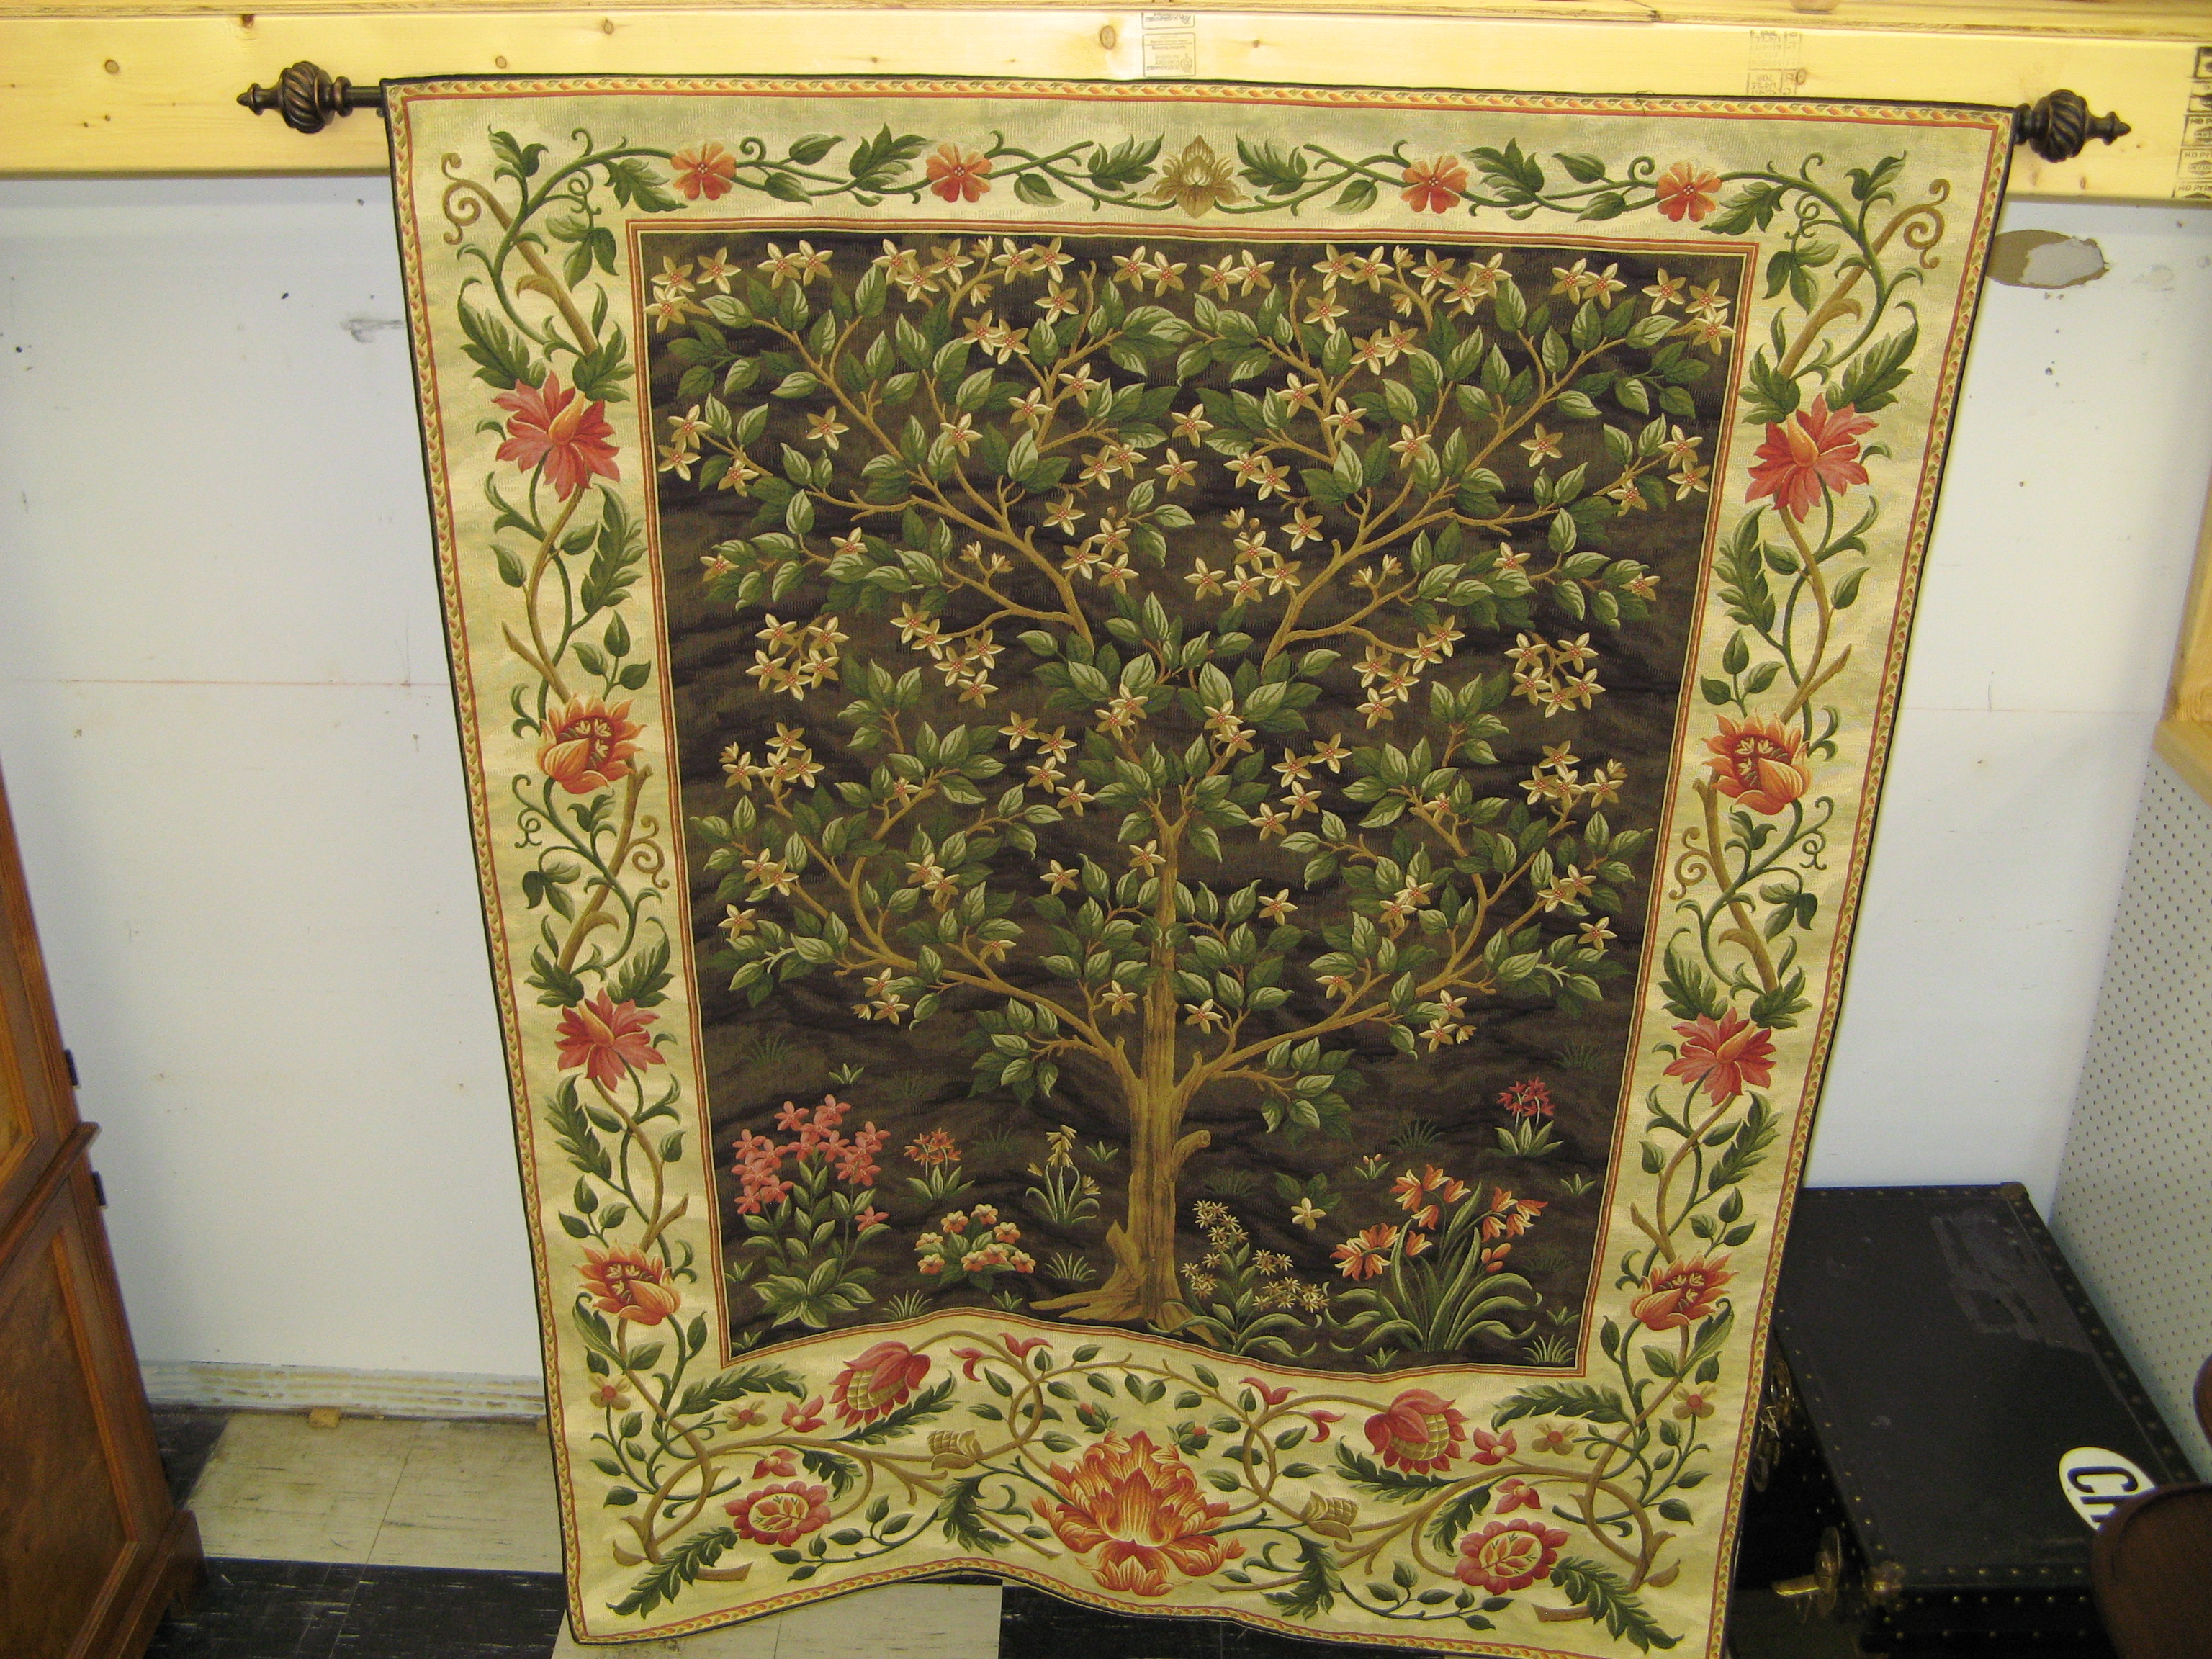 Tree of Life Floral Tapestry - Nature in Full Bloom